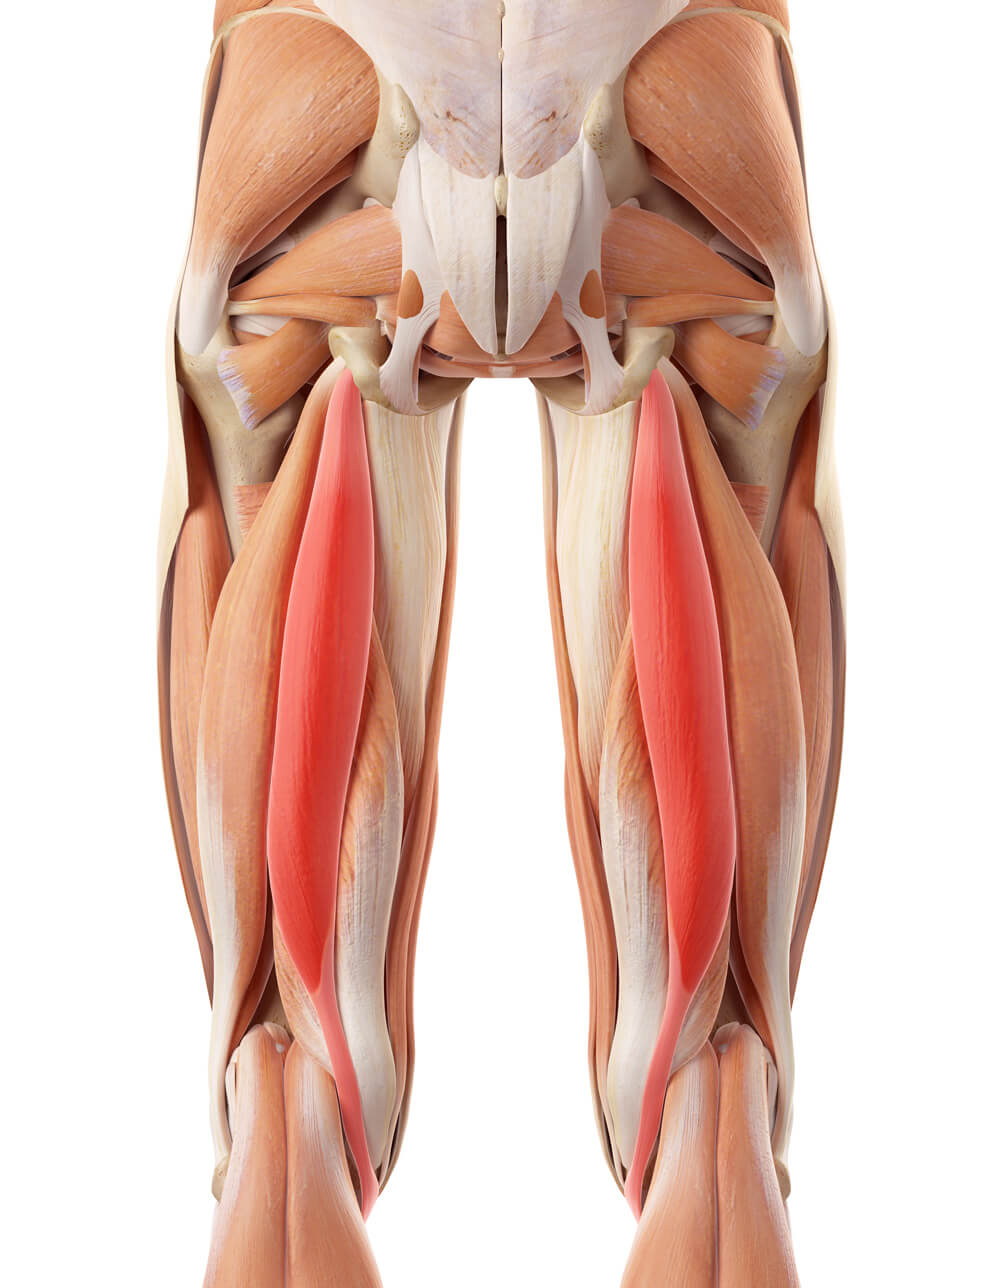 Forward Bends and Hamstring Injury: How Many People Are Injuring ...